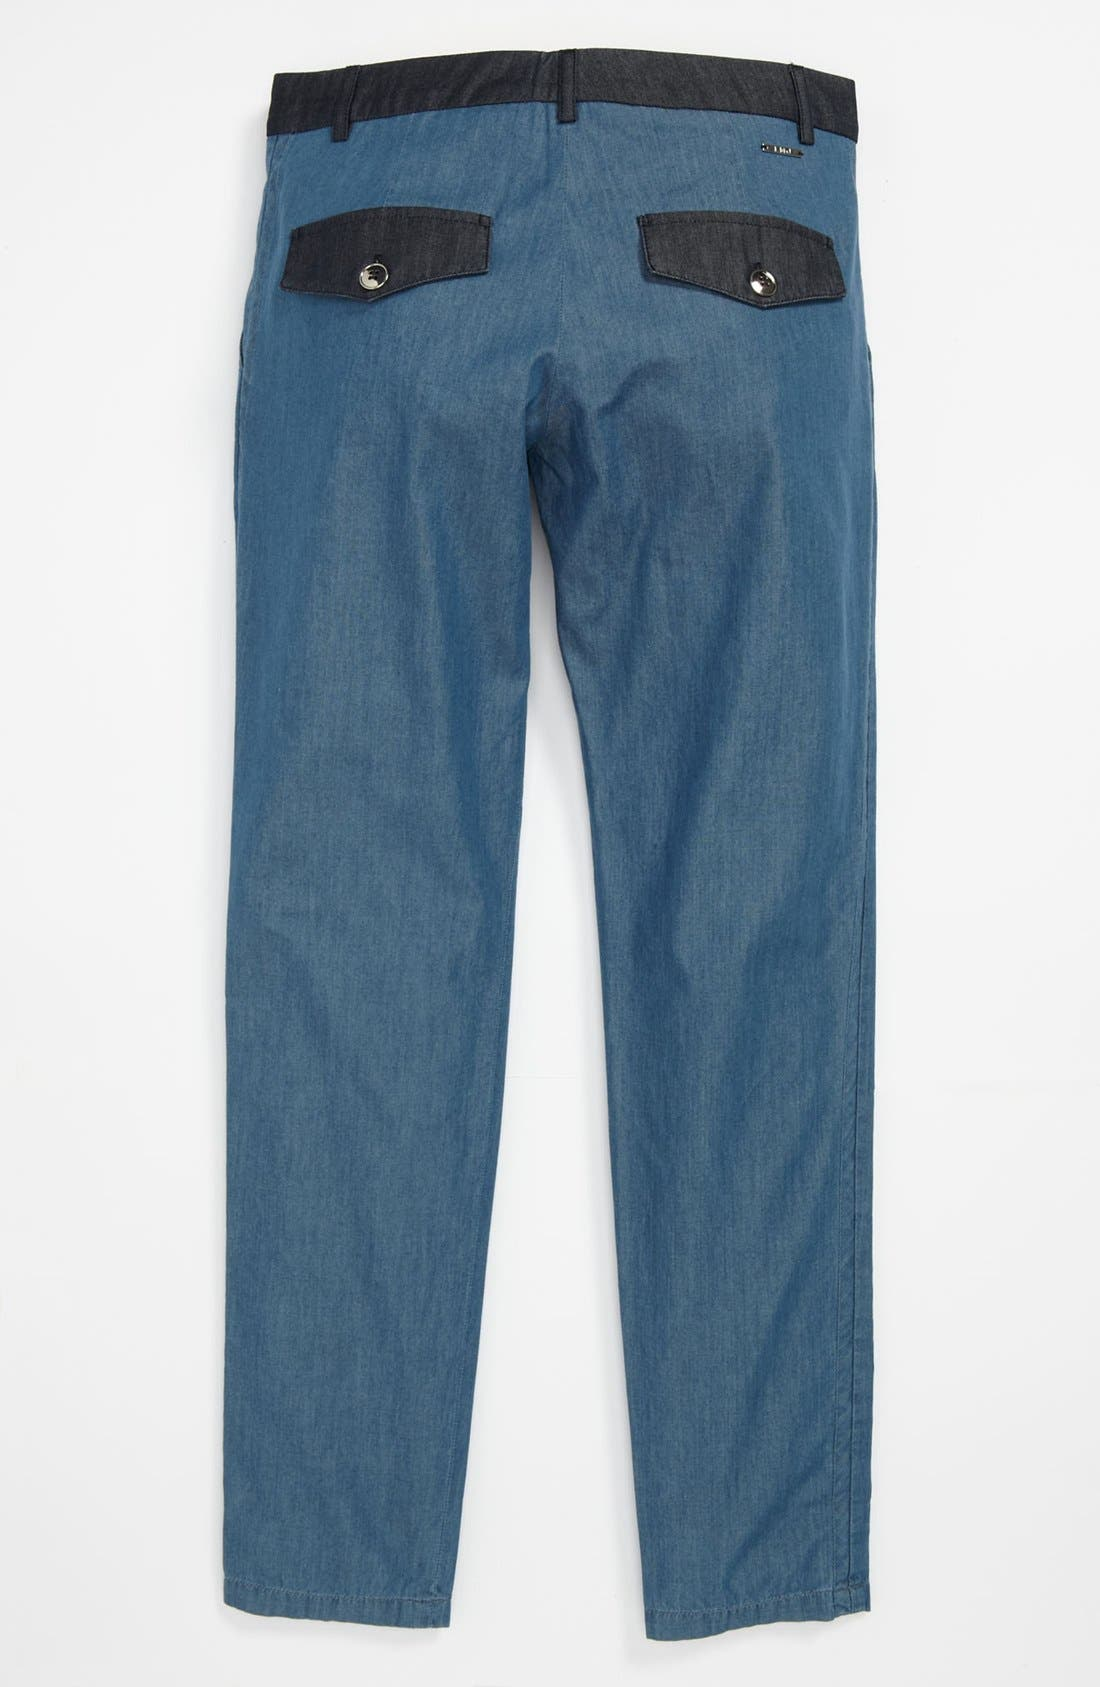 Alternate Image 1 Selected - LITTLE MARC JACOBS Chambray Pants (Big Girls)